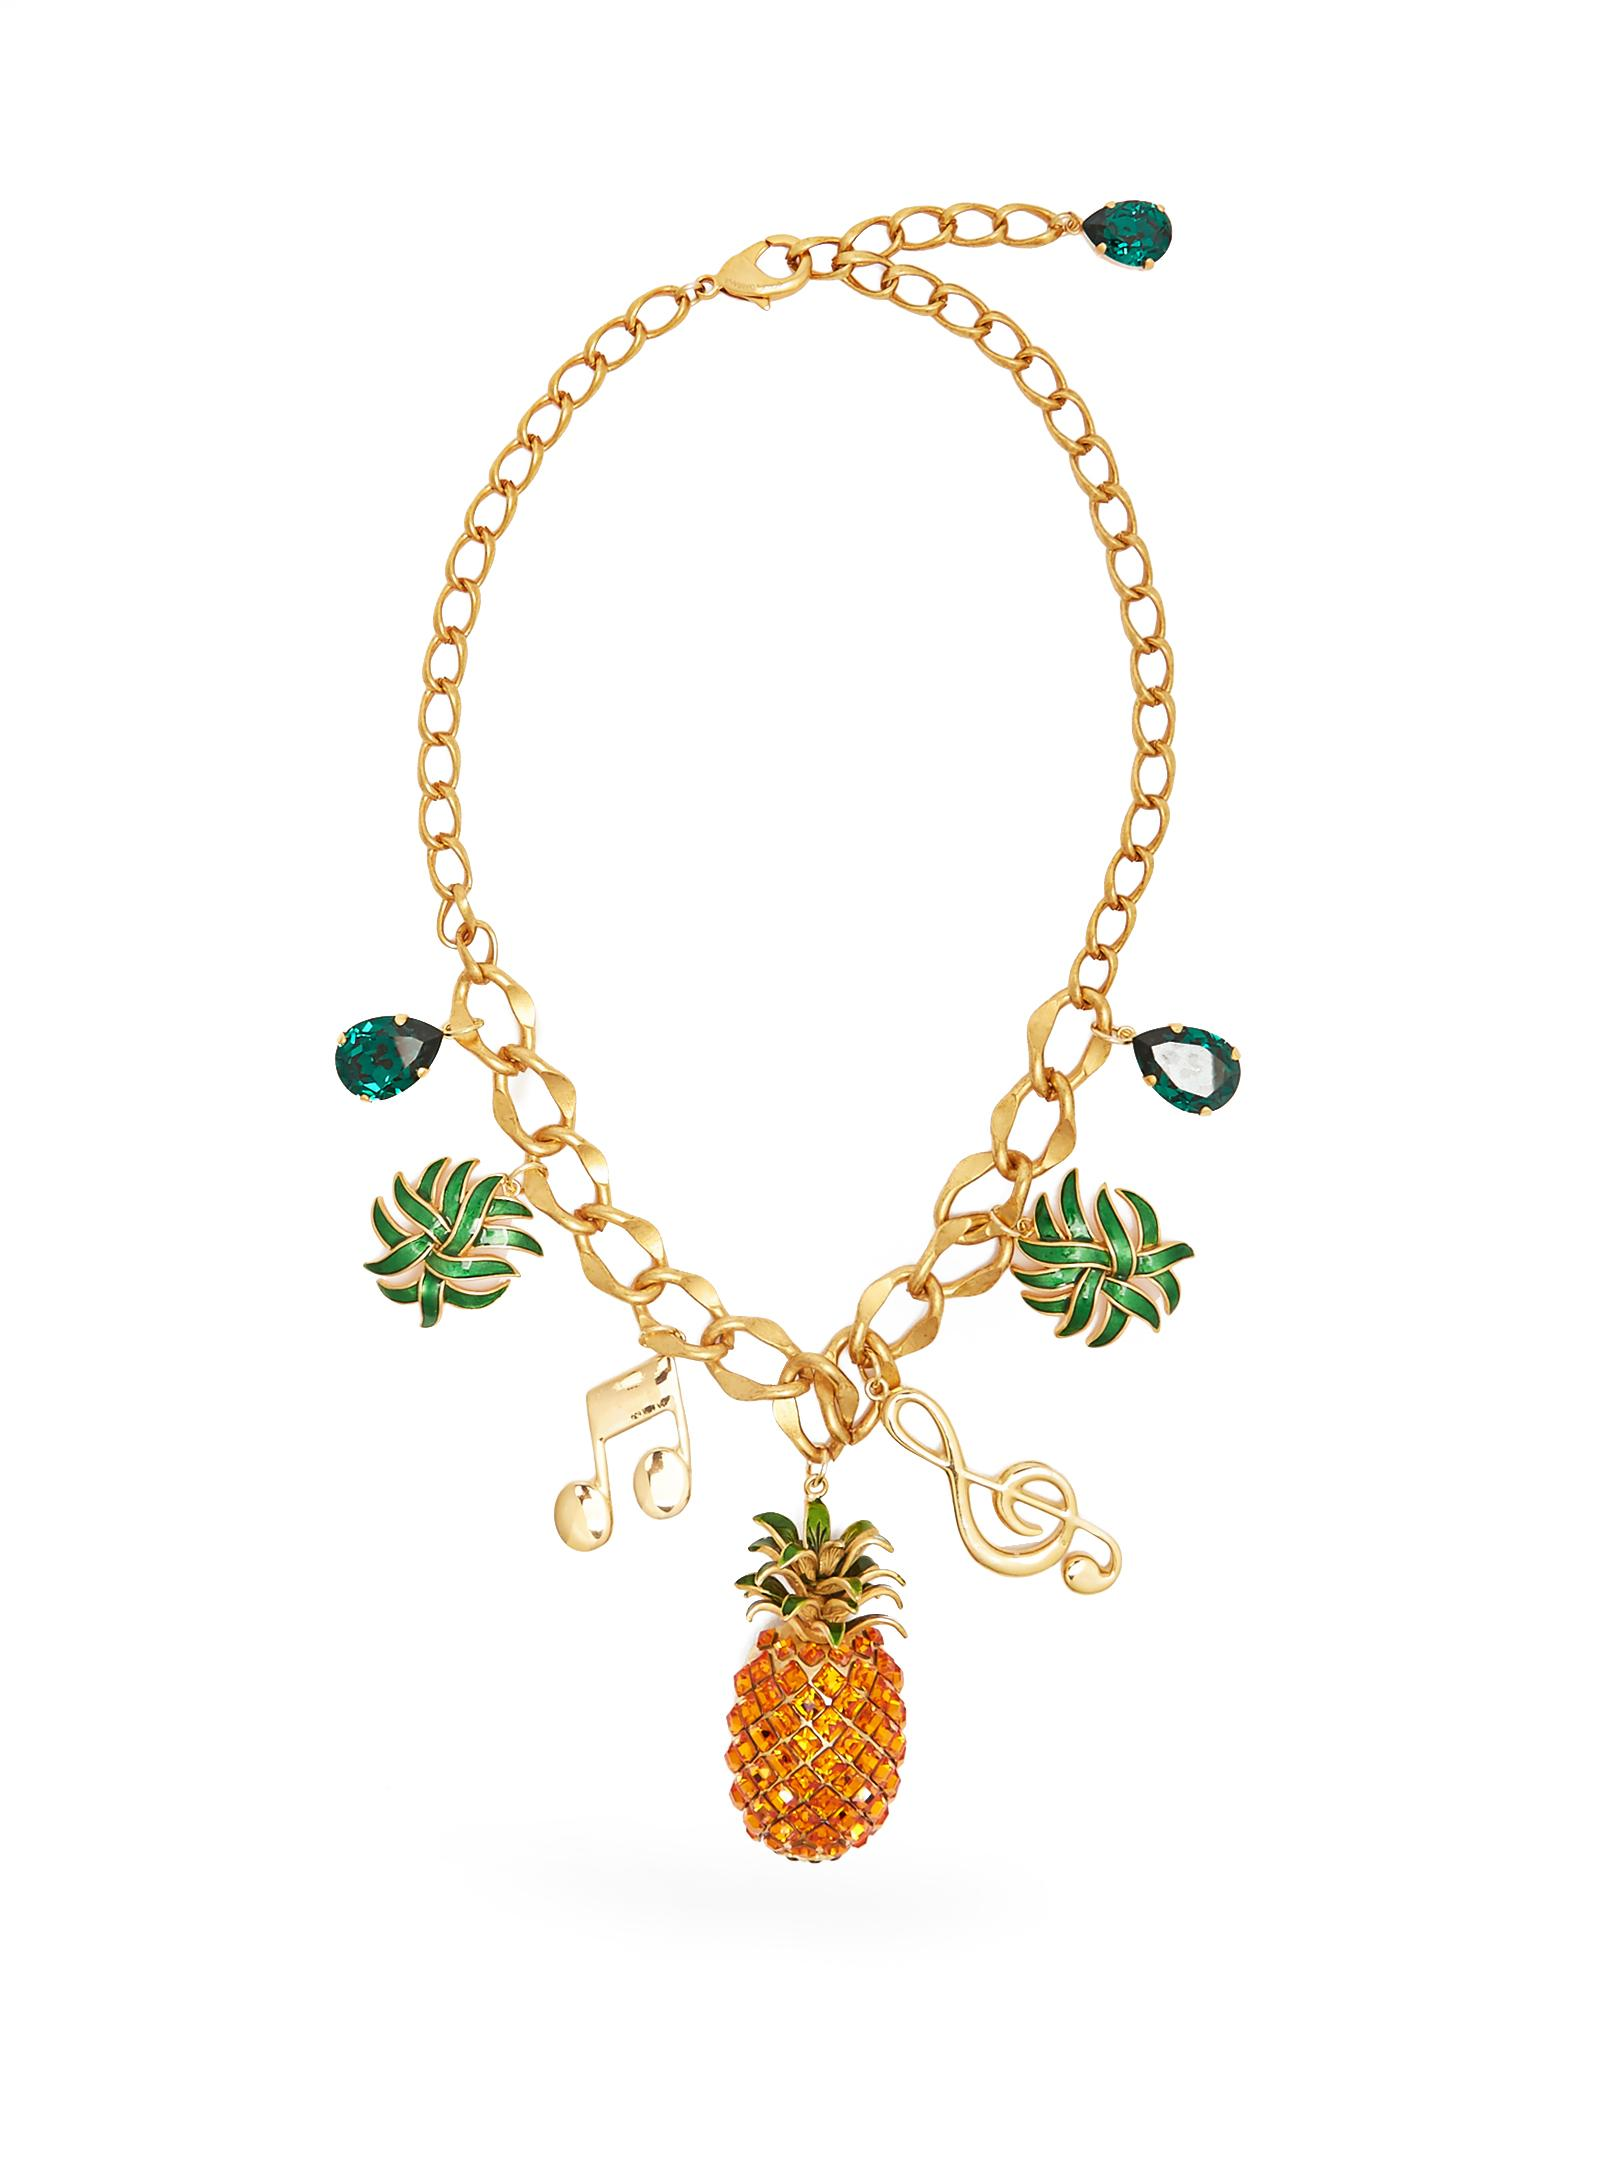 Dolce & Gabbana Silk Crystal-embellished Necklace in Metallic